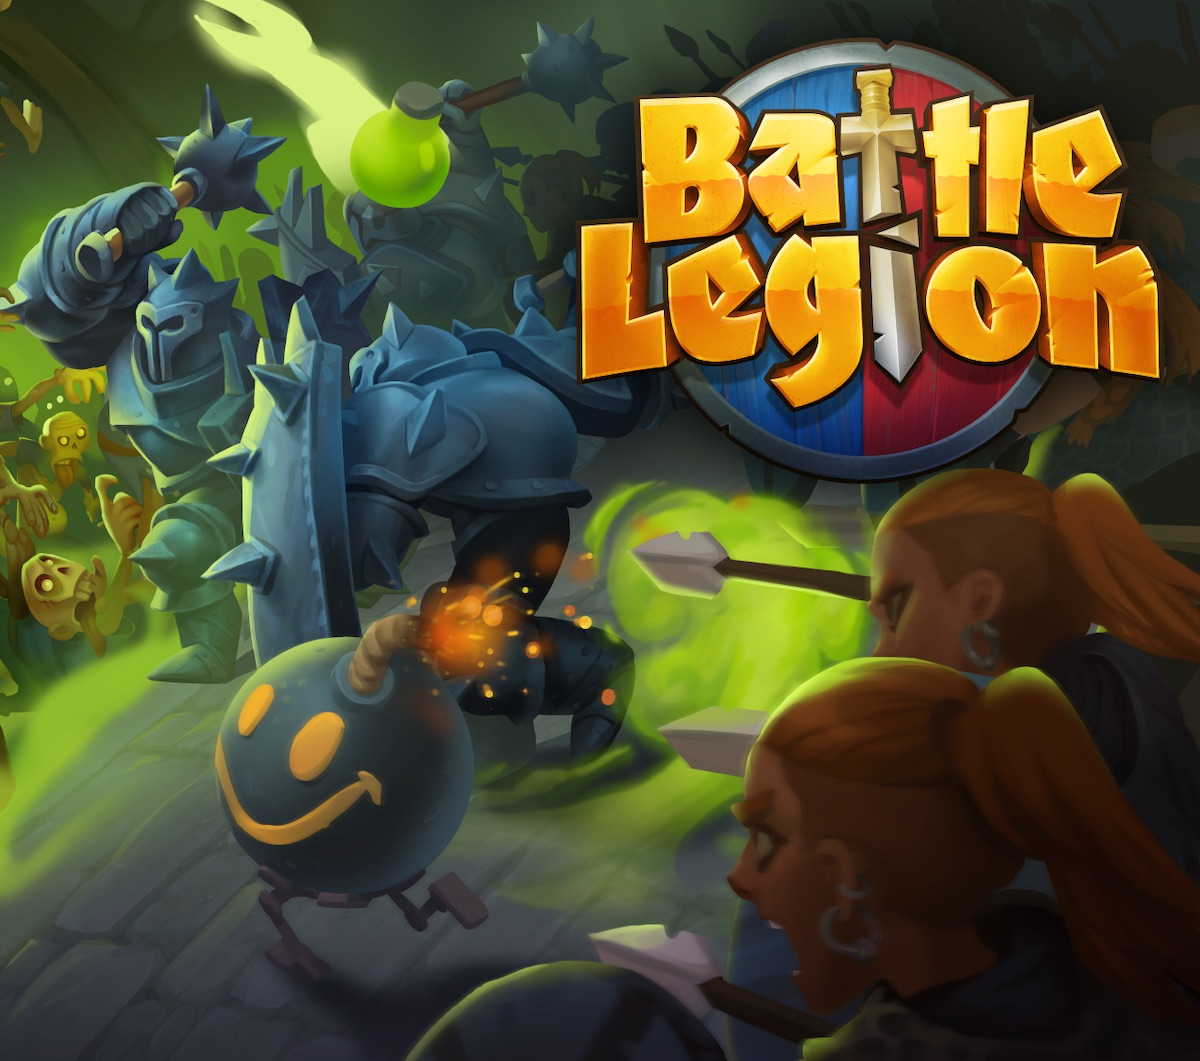 Image from 'Battle Legion', play's portfolio company